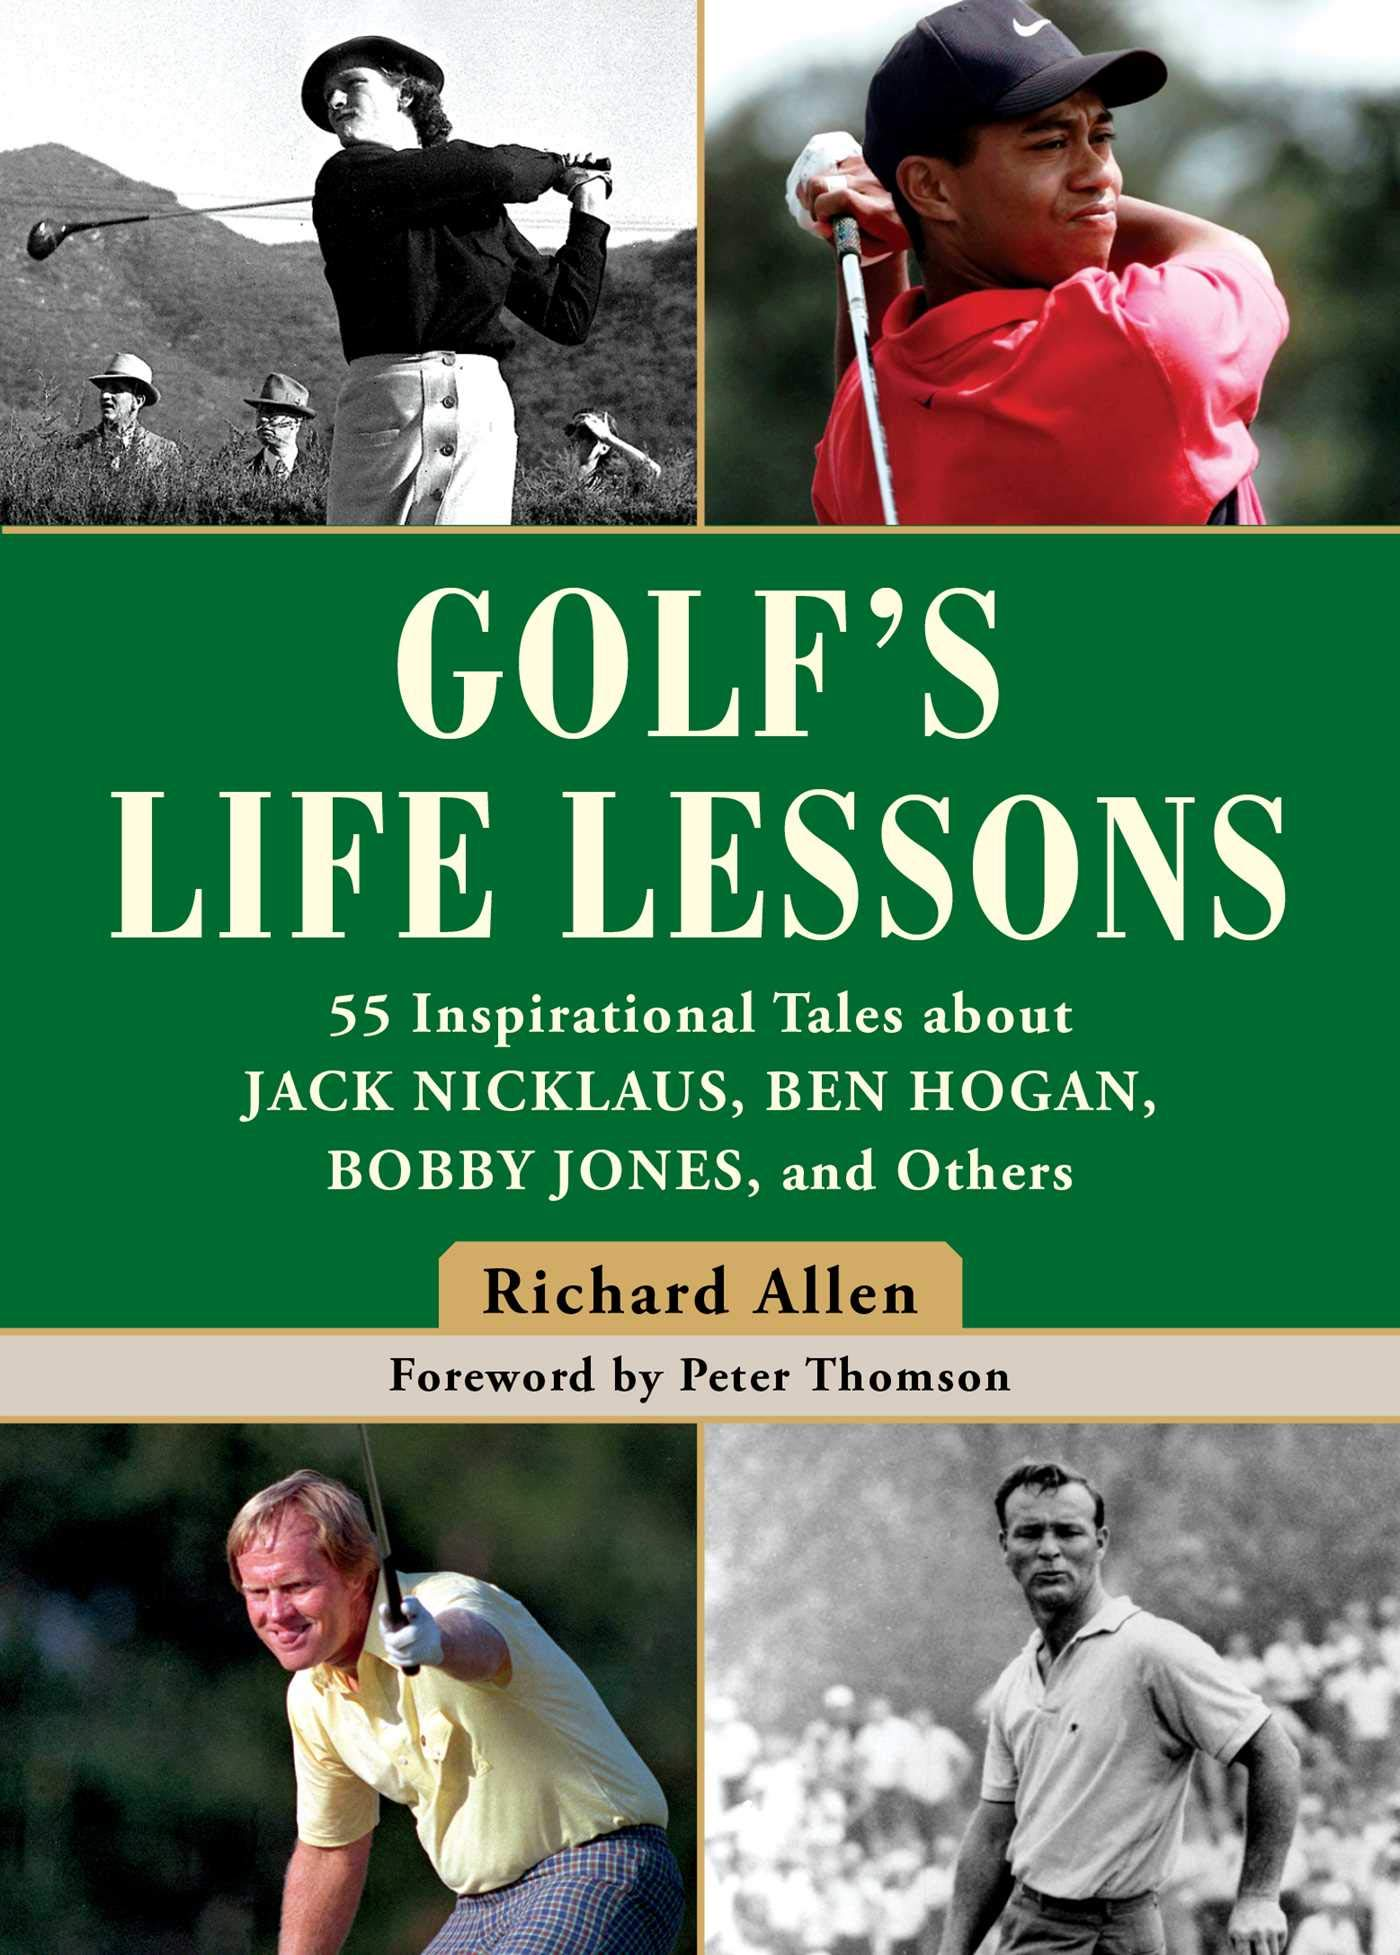 Golf's Life Lessons: 55 Inspirational Tales about Jack Nicklaus Ben Hogan Bobby Jones and Others